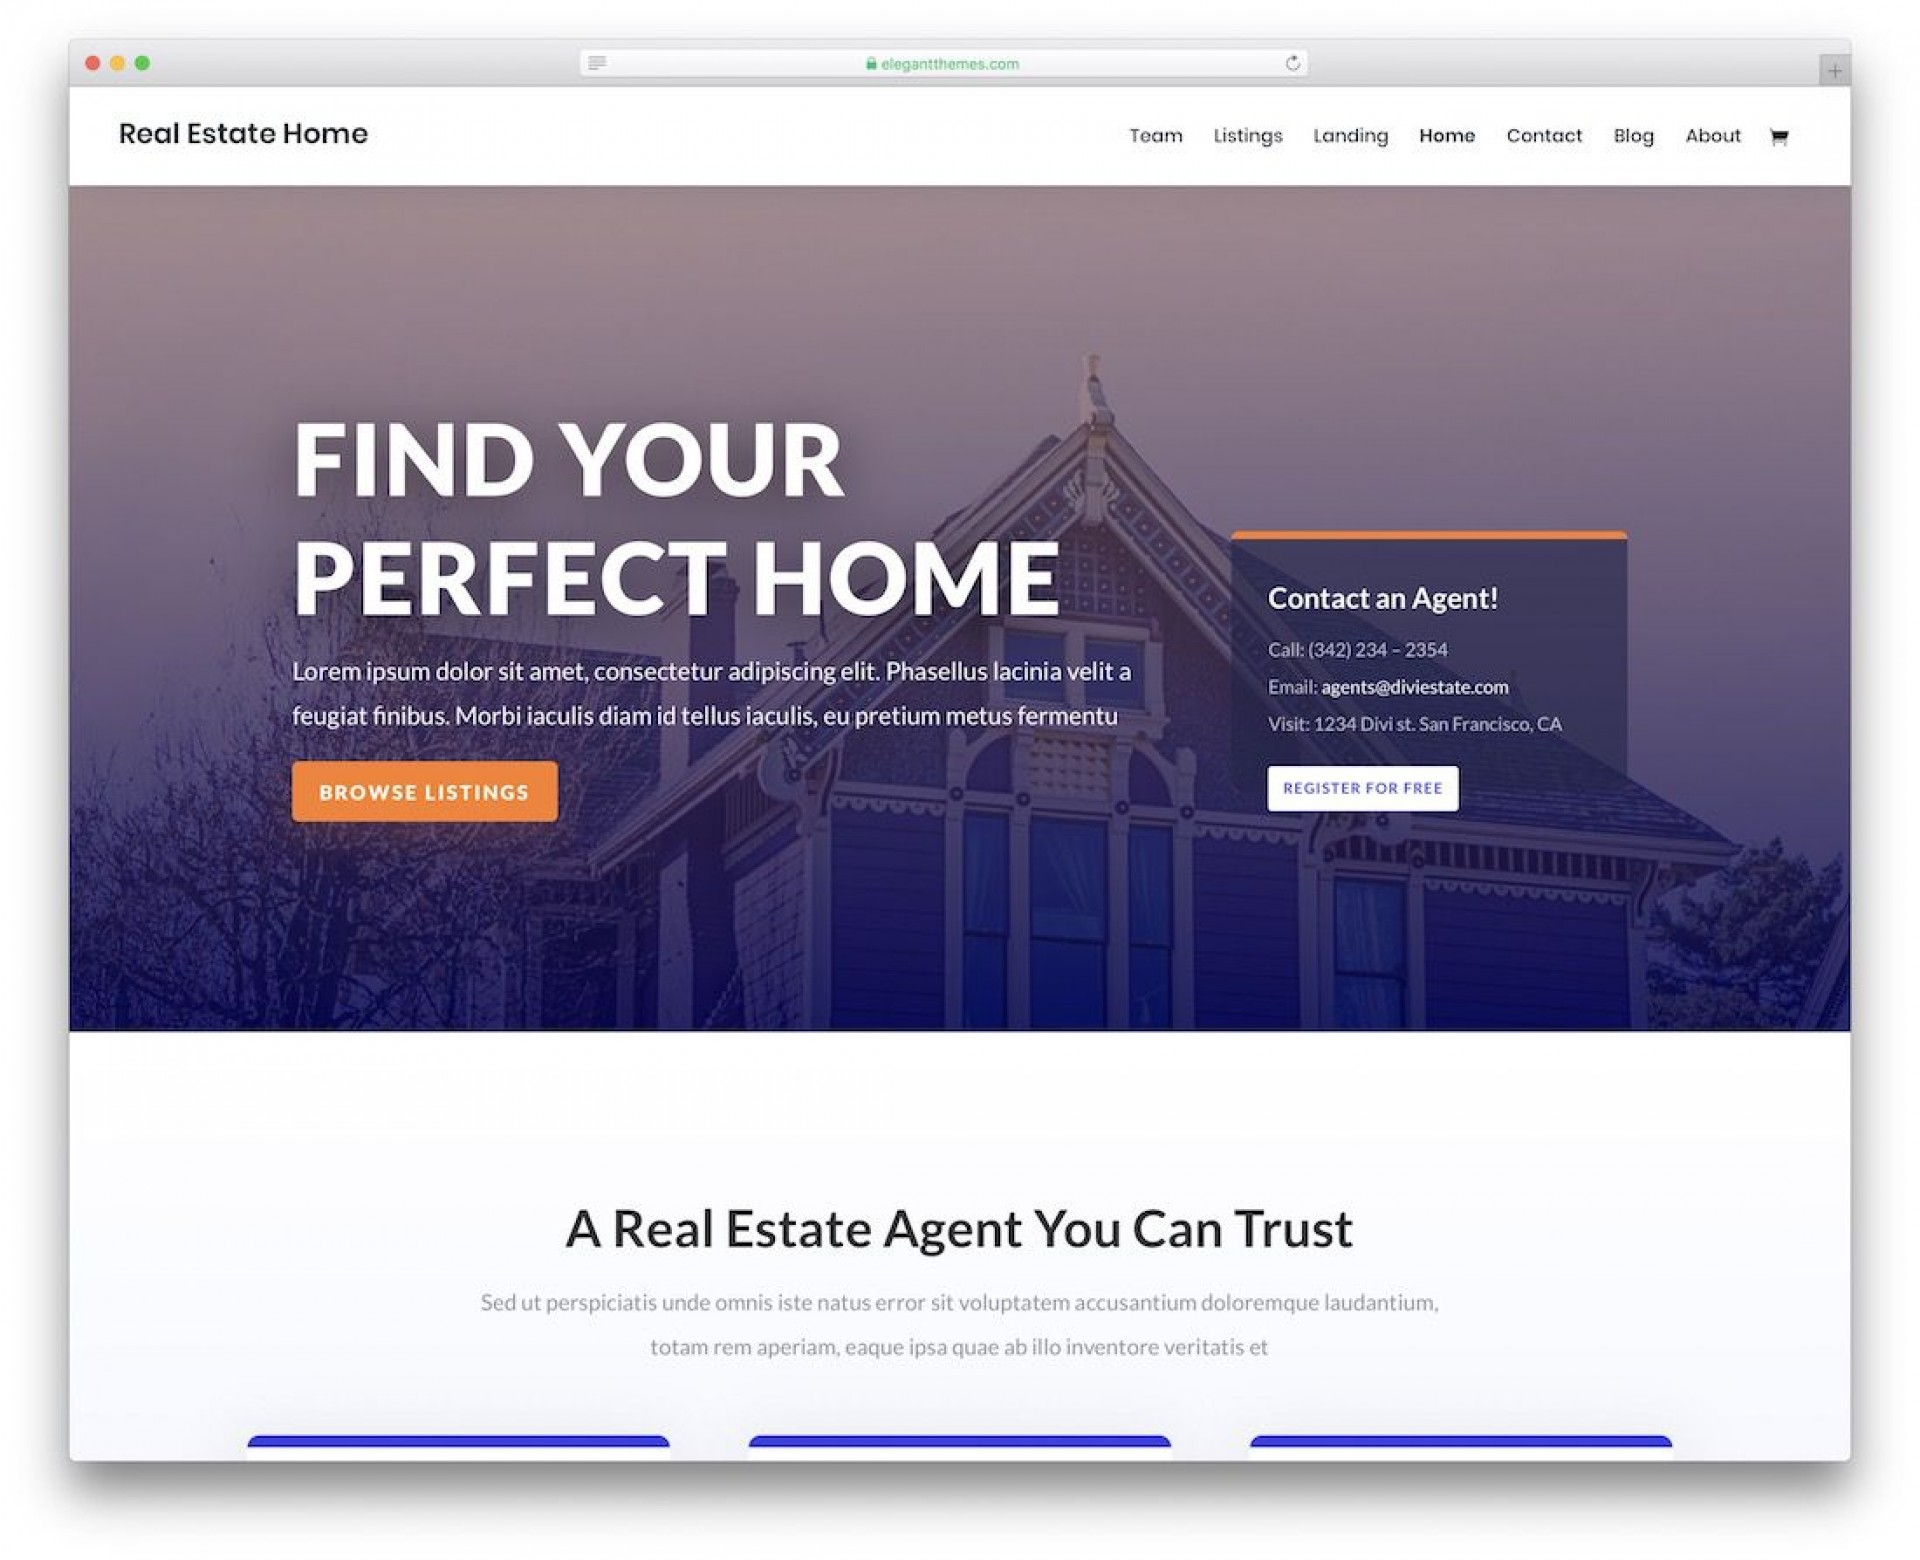 000 Unusual Real Estate Agent Website Template Photo  Templates Agency Responsive Free Download Company Web1920